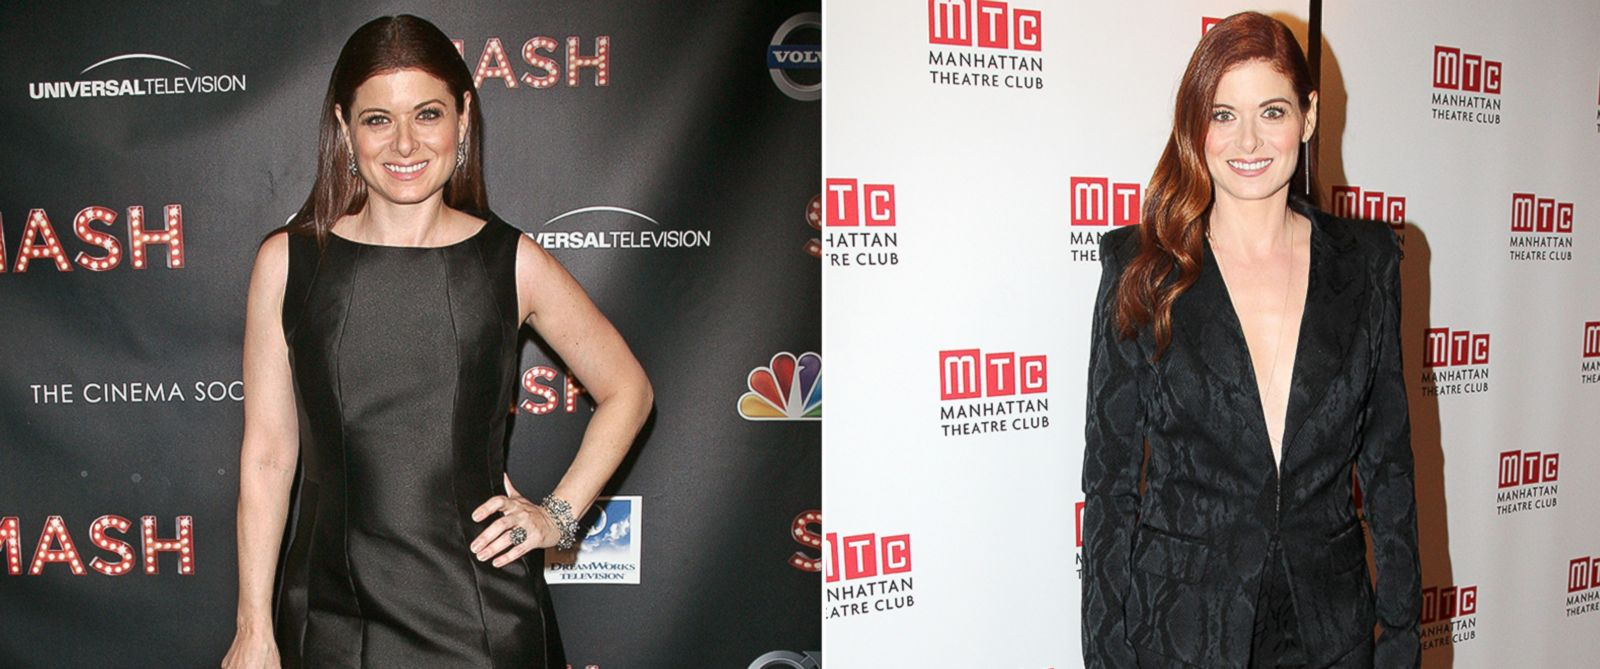 """PHOTO: Debra Messing, left, attending the premiere of """"Smash"""" in New York City on Jan. 26, 2012 and right, attending the Broadway opening of """"Outside Mullingar"""" on Jan. 23, 2014 in New York."""